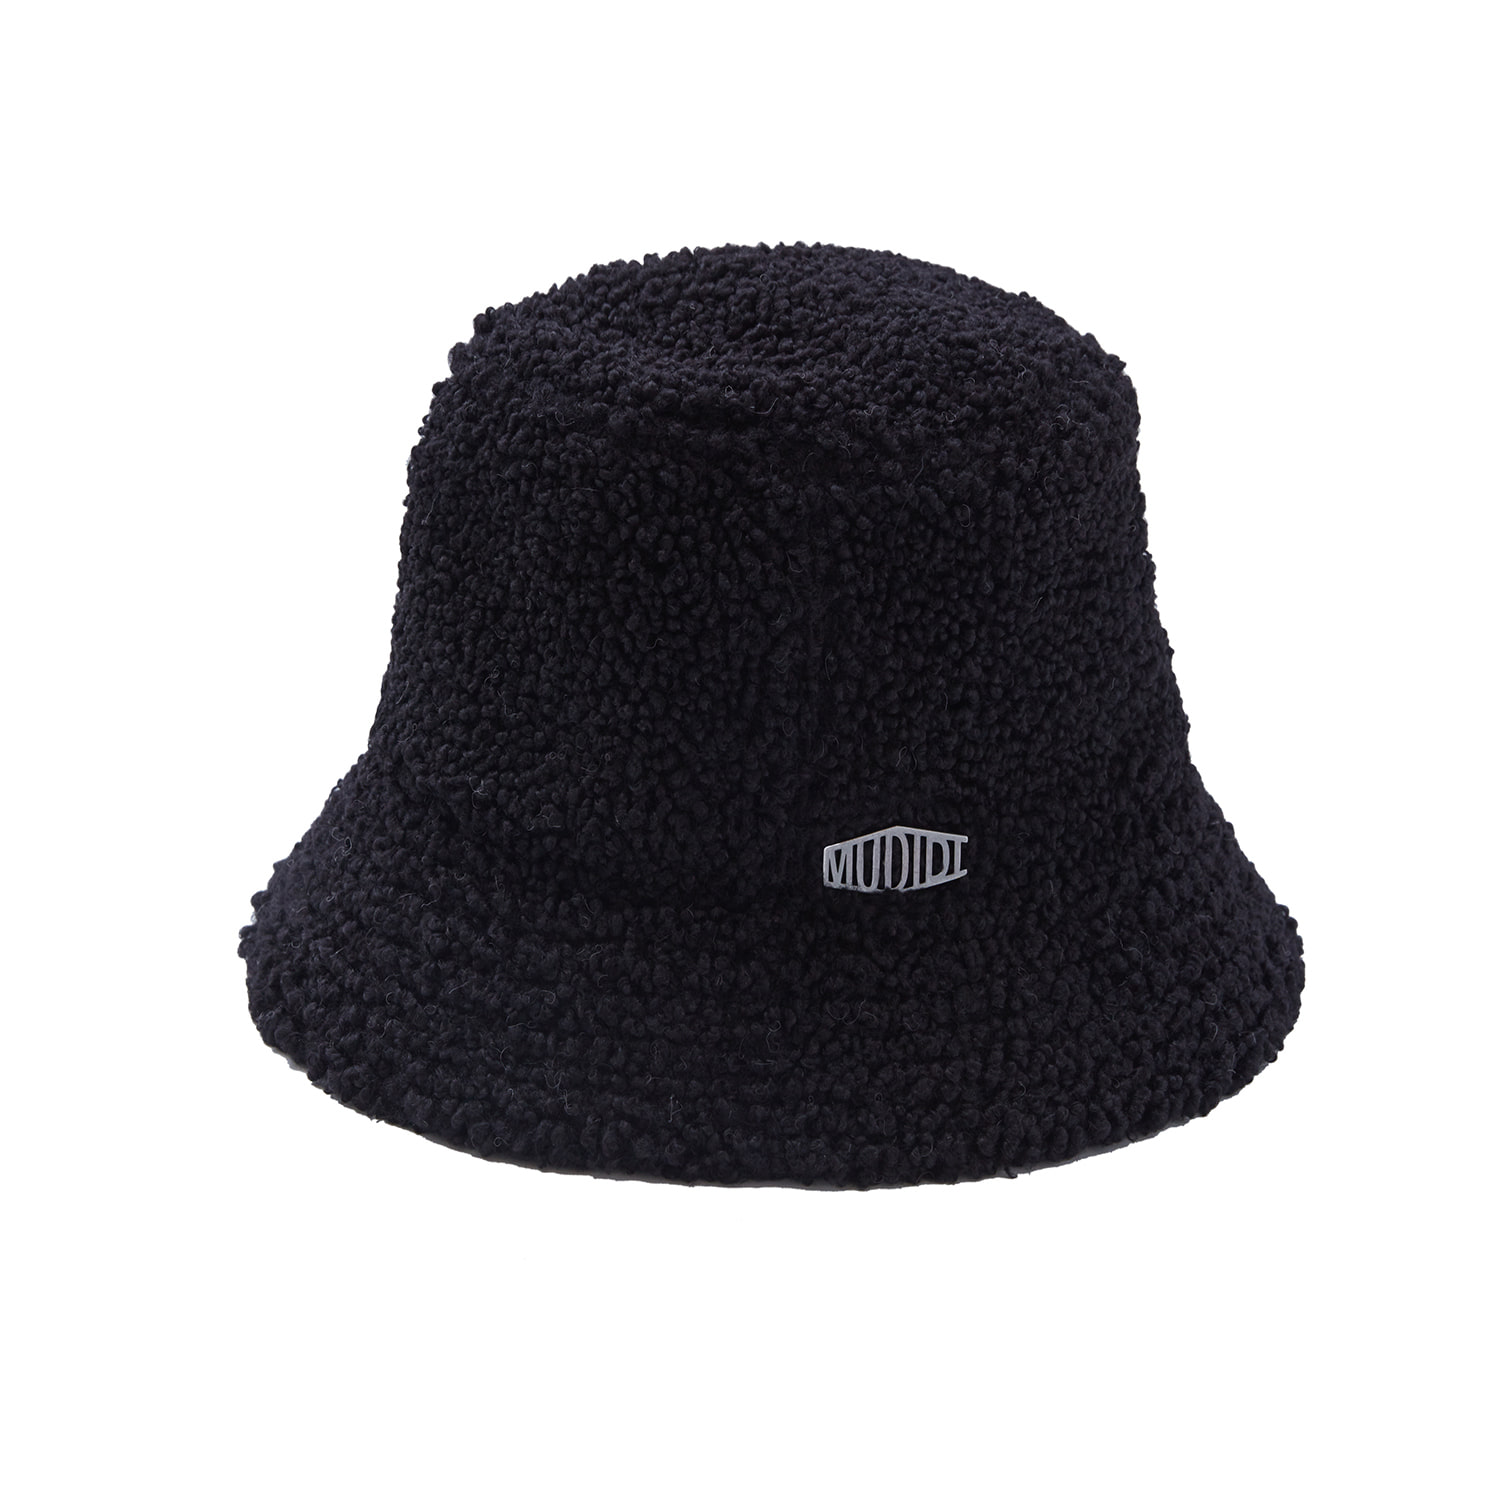 Mudidi Teddy bucket hat 002 Black